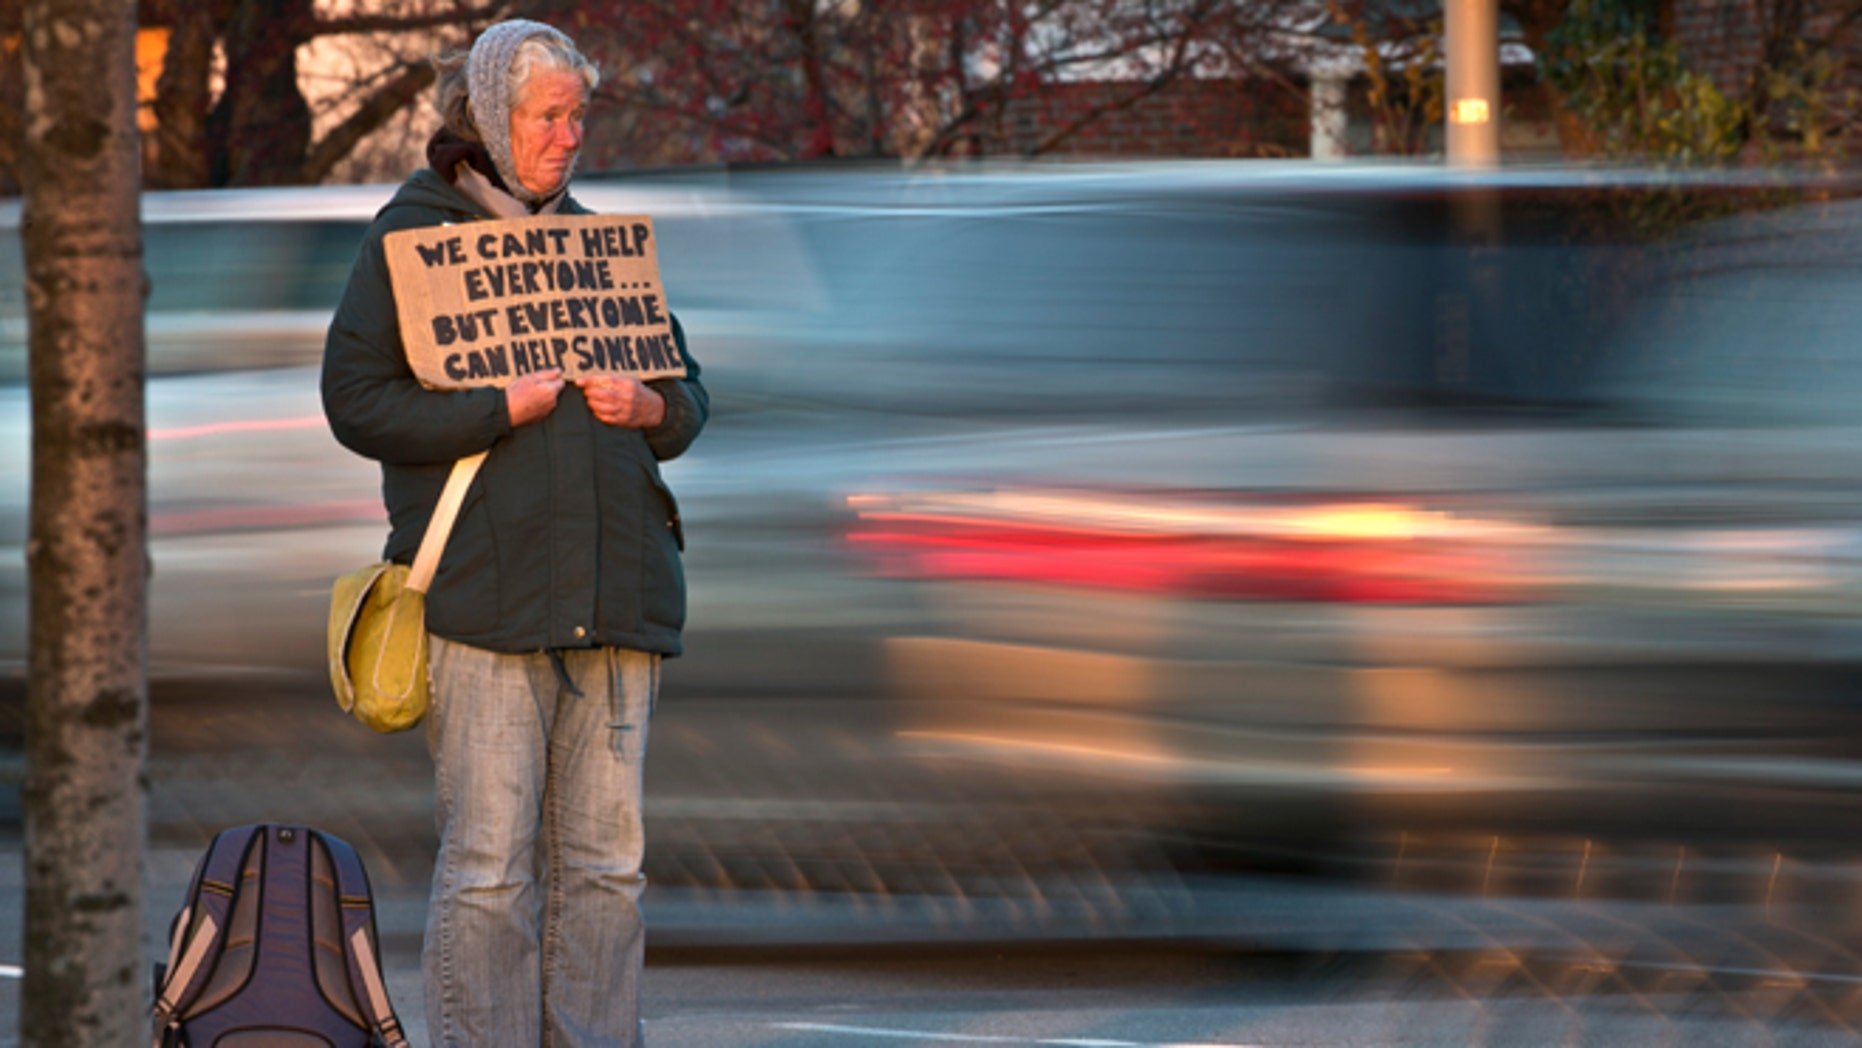 FILE - Nov. 14, 2013: Susan St. Amour, 54, a homeless woman, panhandles during the evening commute in Portland, Maine.